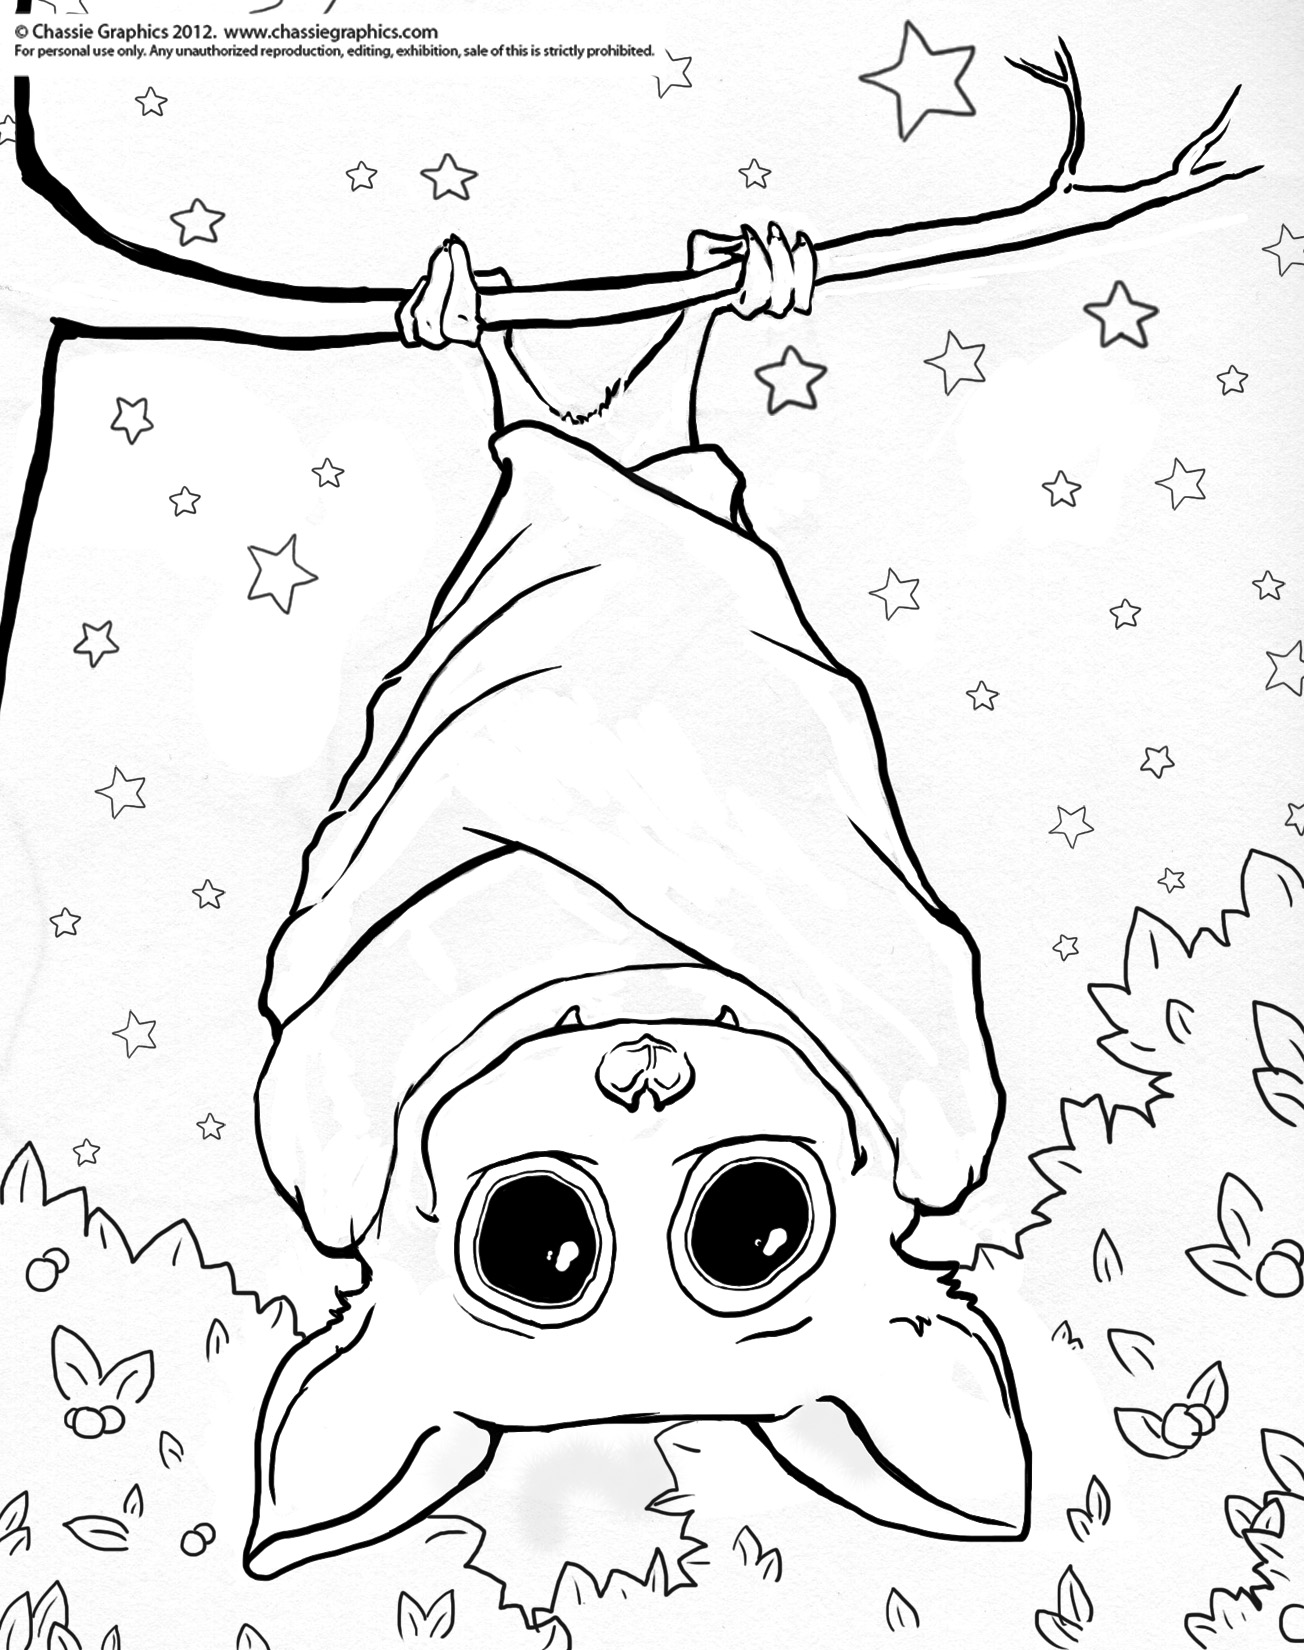 fruit bat coloring pages - photo#28